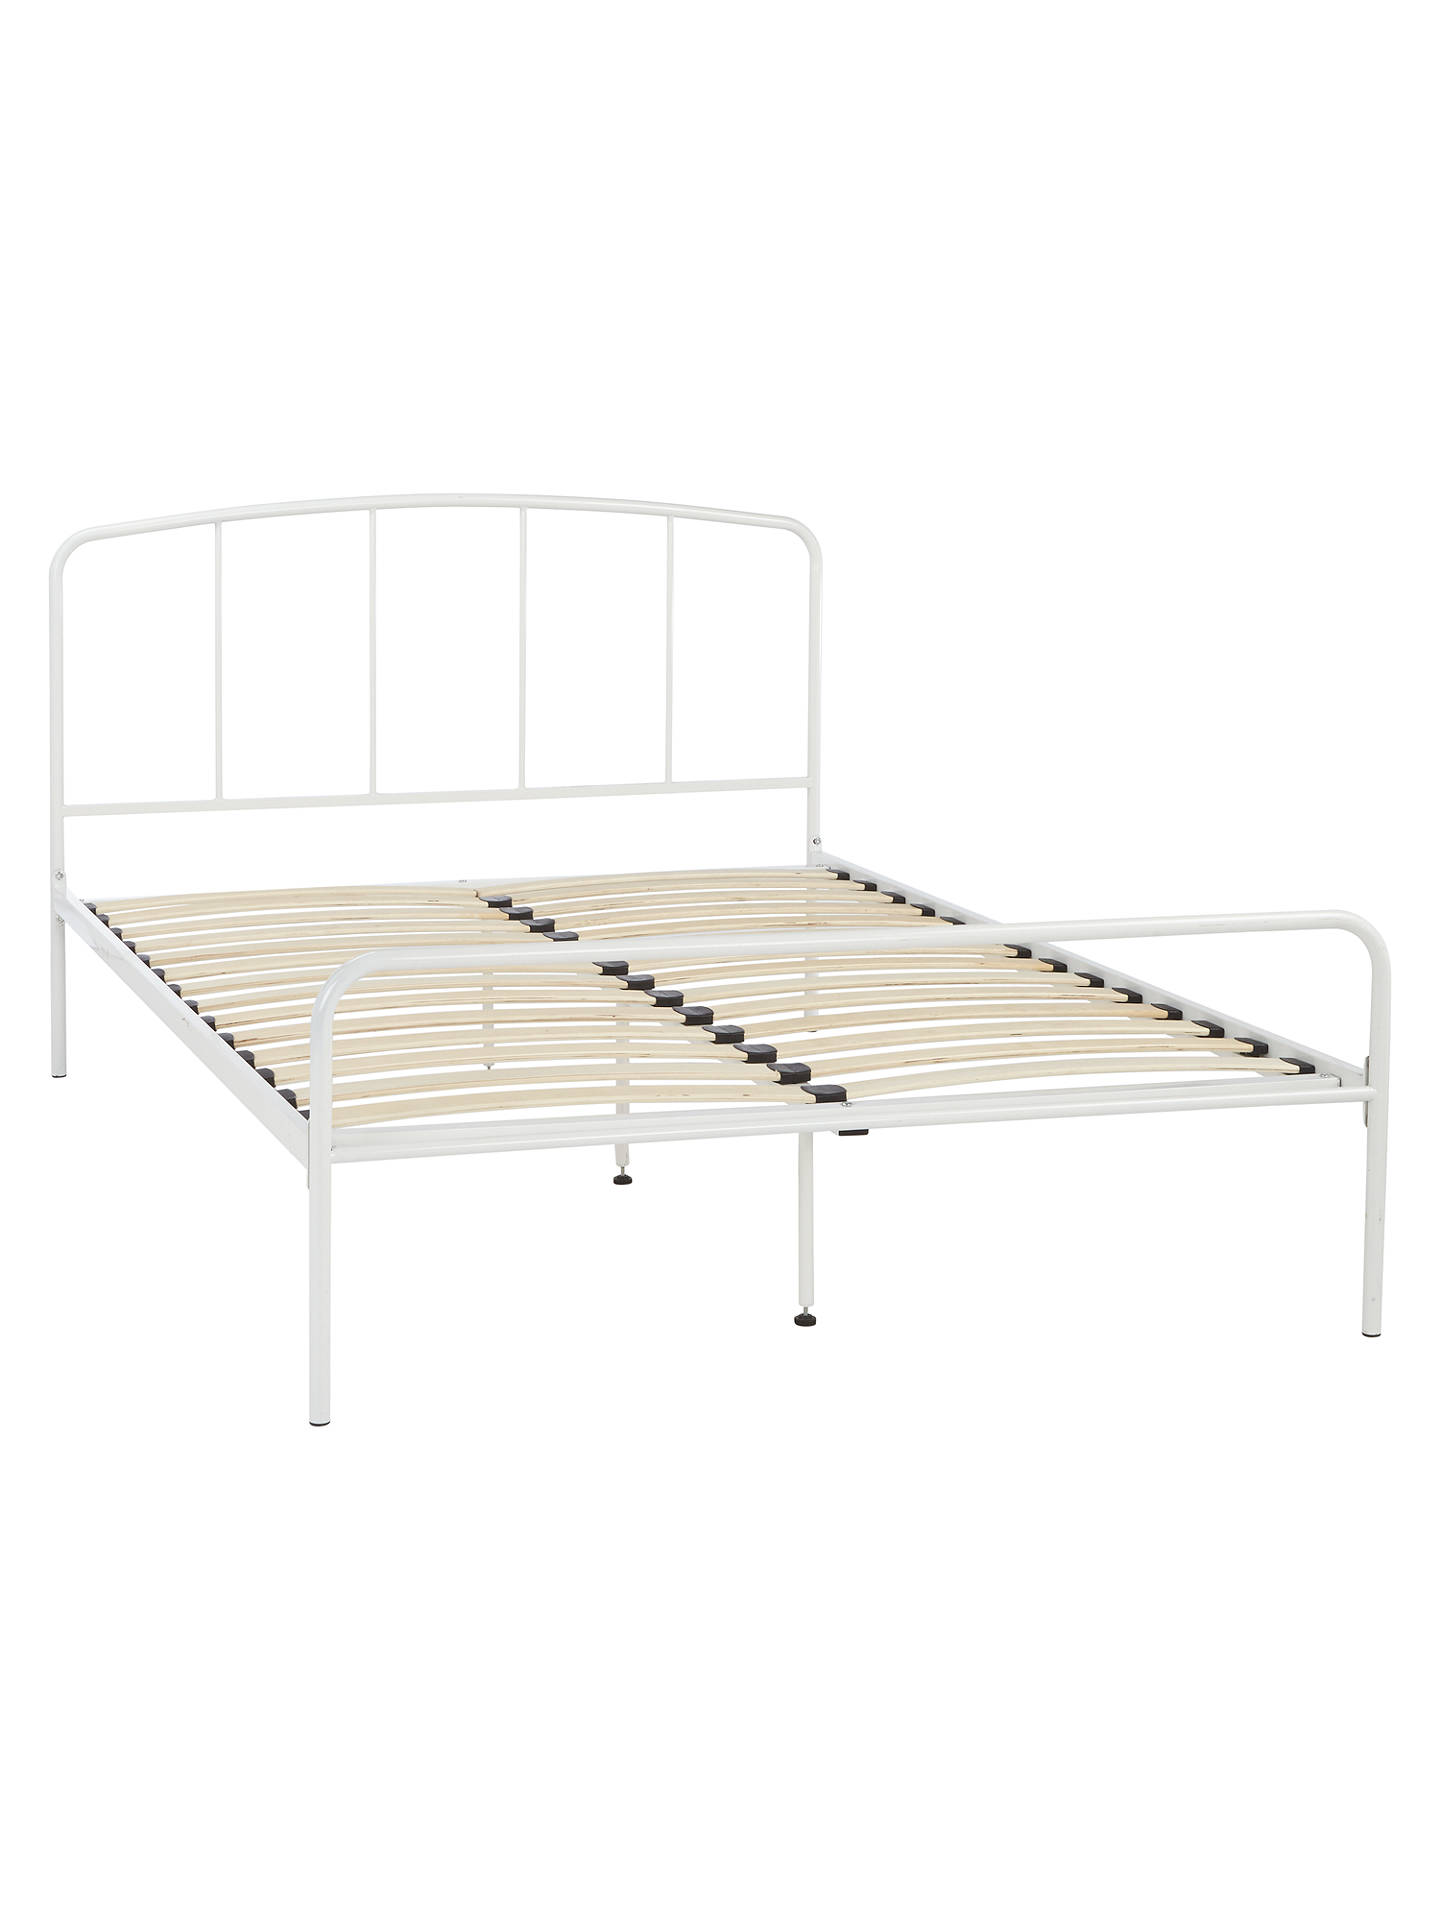 John Lewis & Partners The Basics Alpha Bed Frame, Double at John ...